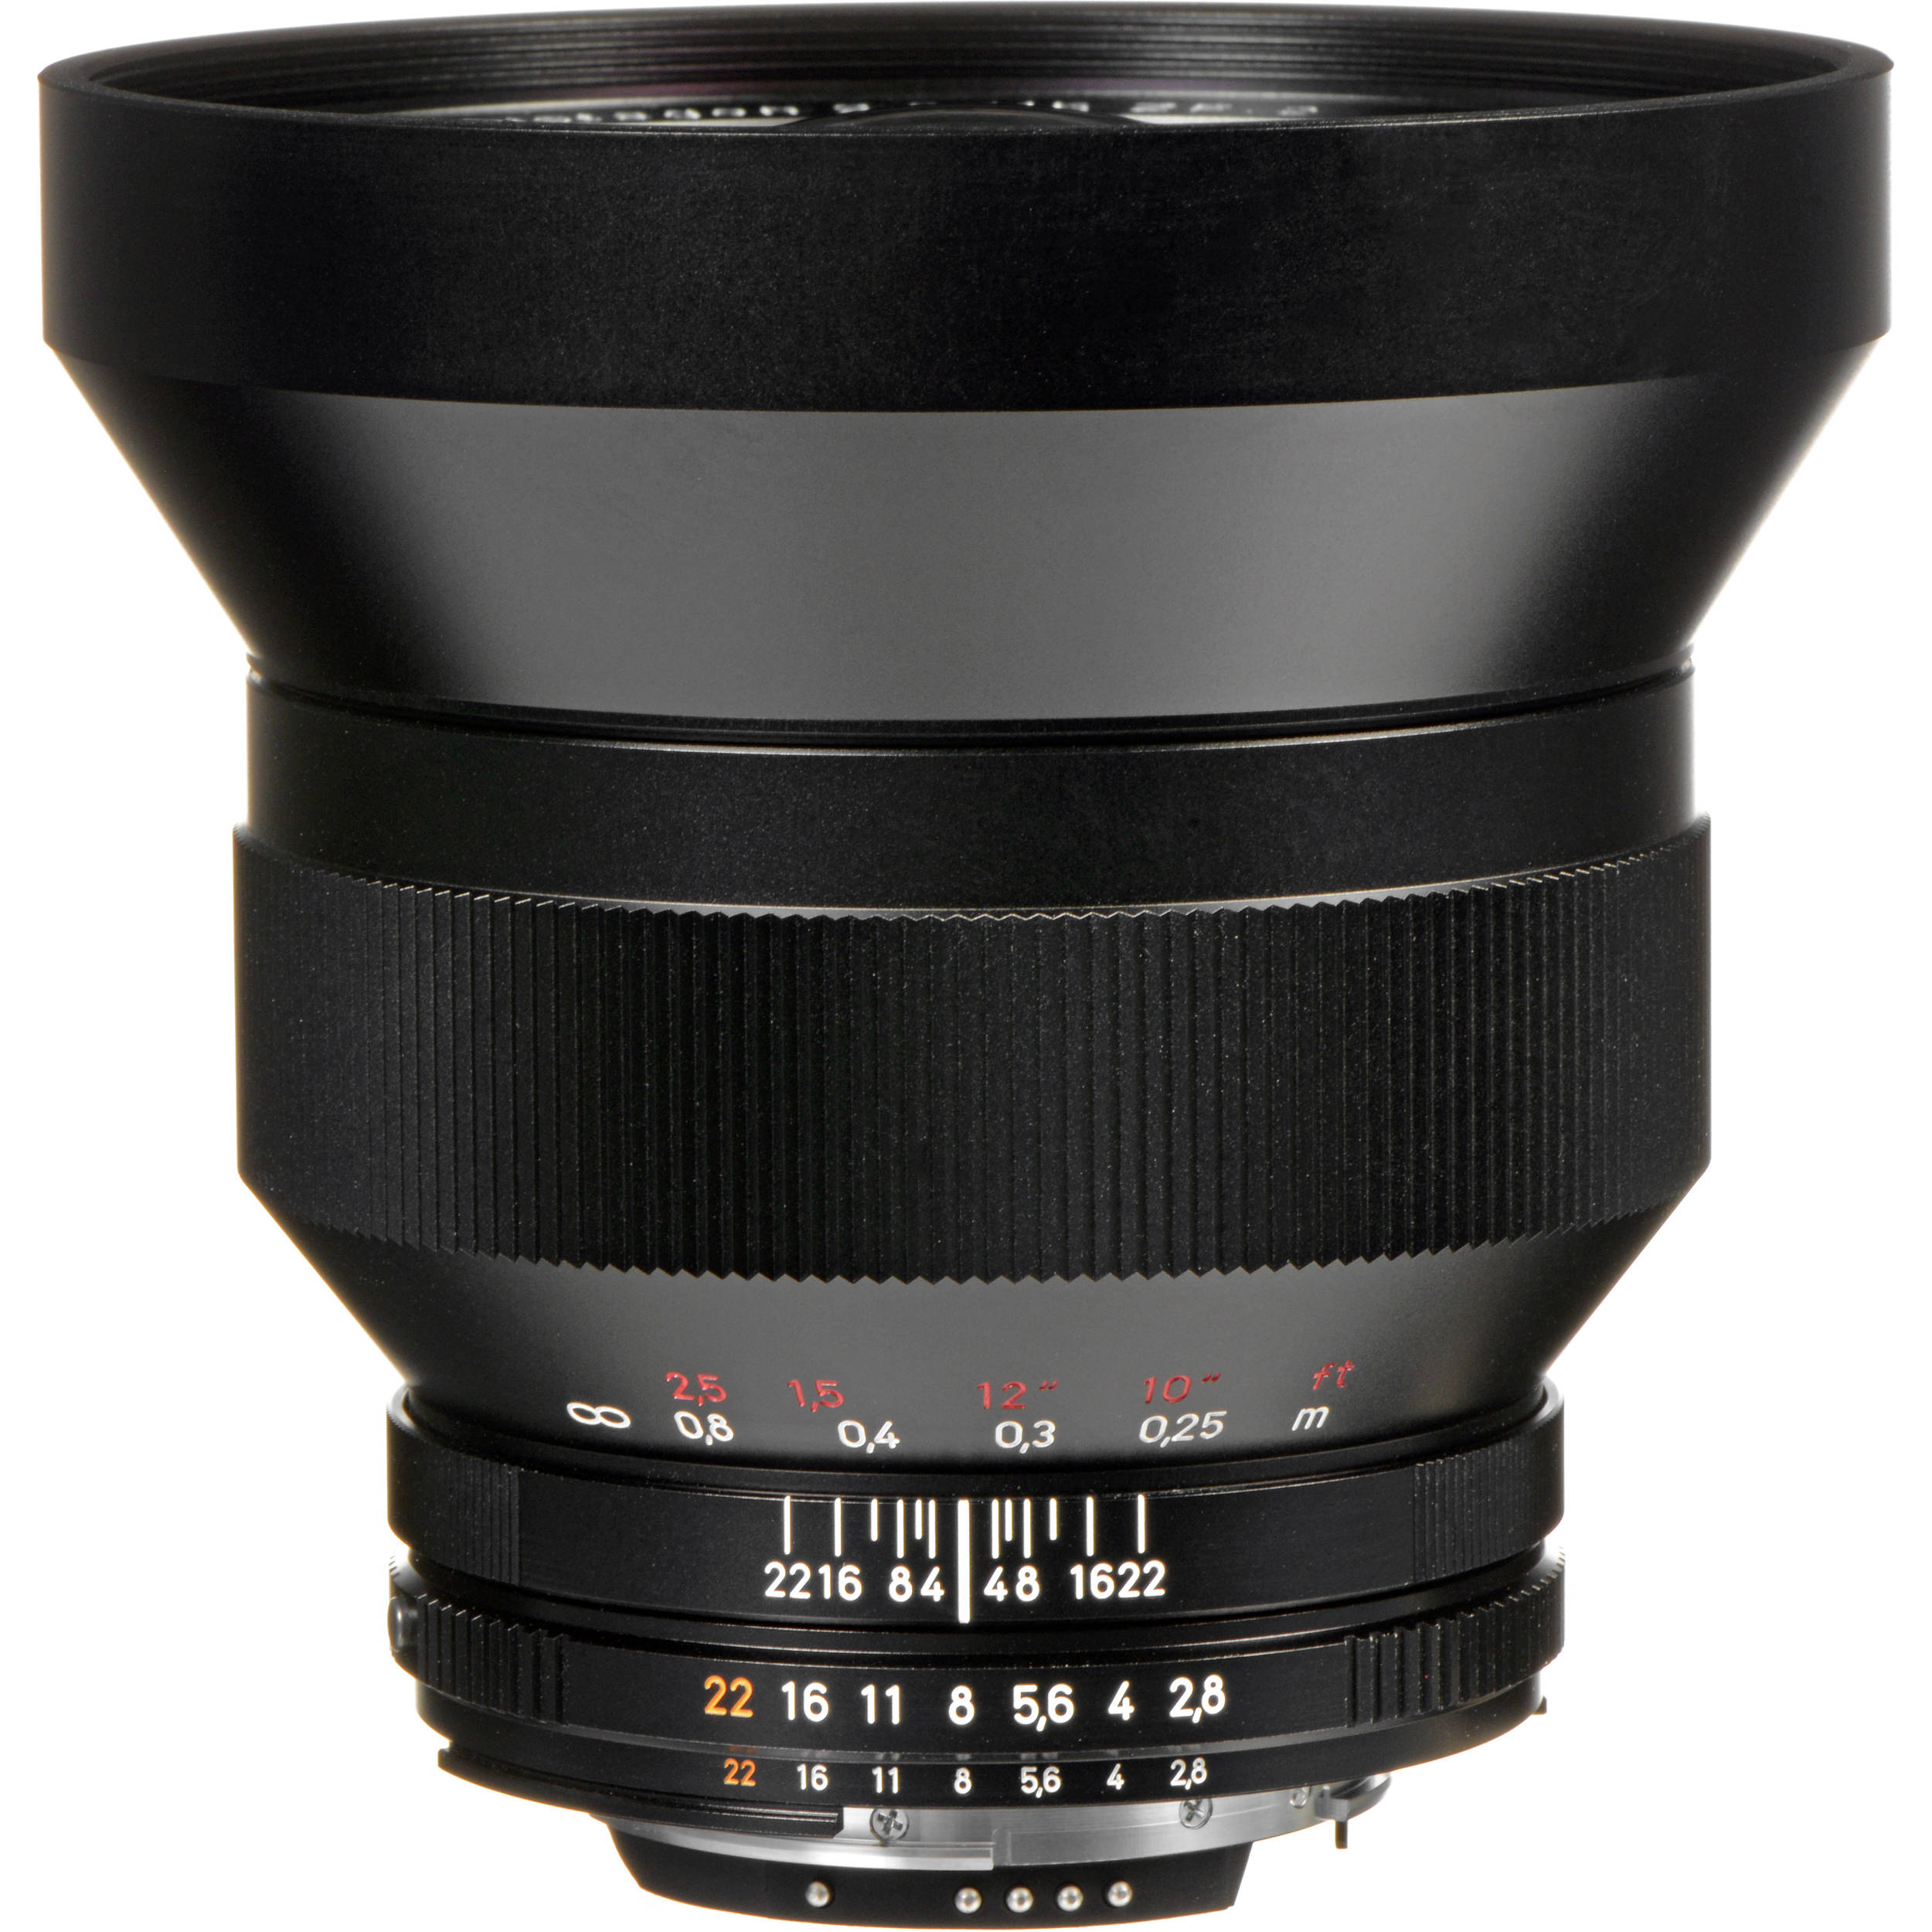 ZEISS Distagon T* 15mm f/2 8 ZF 2 Lens without Built-In Lens Hood for Nikon  F